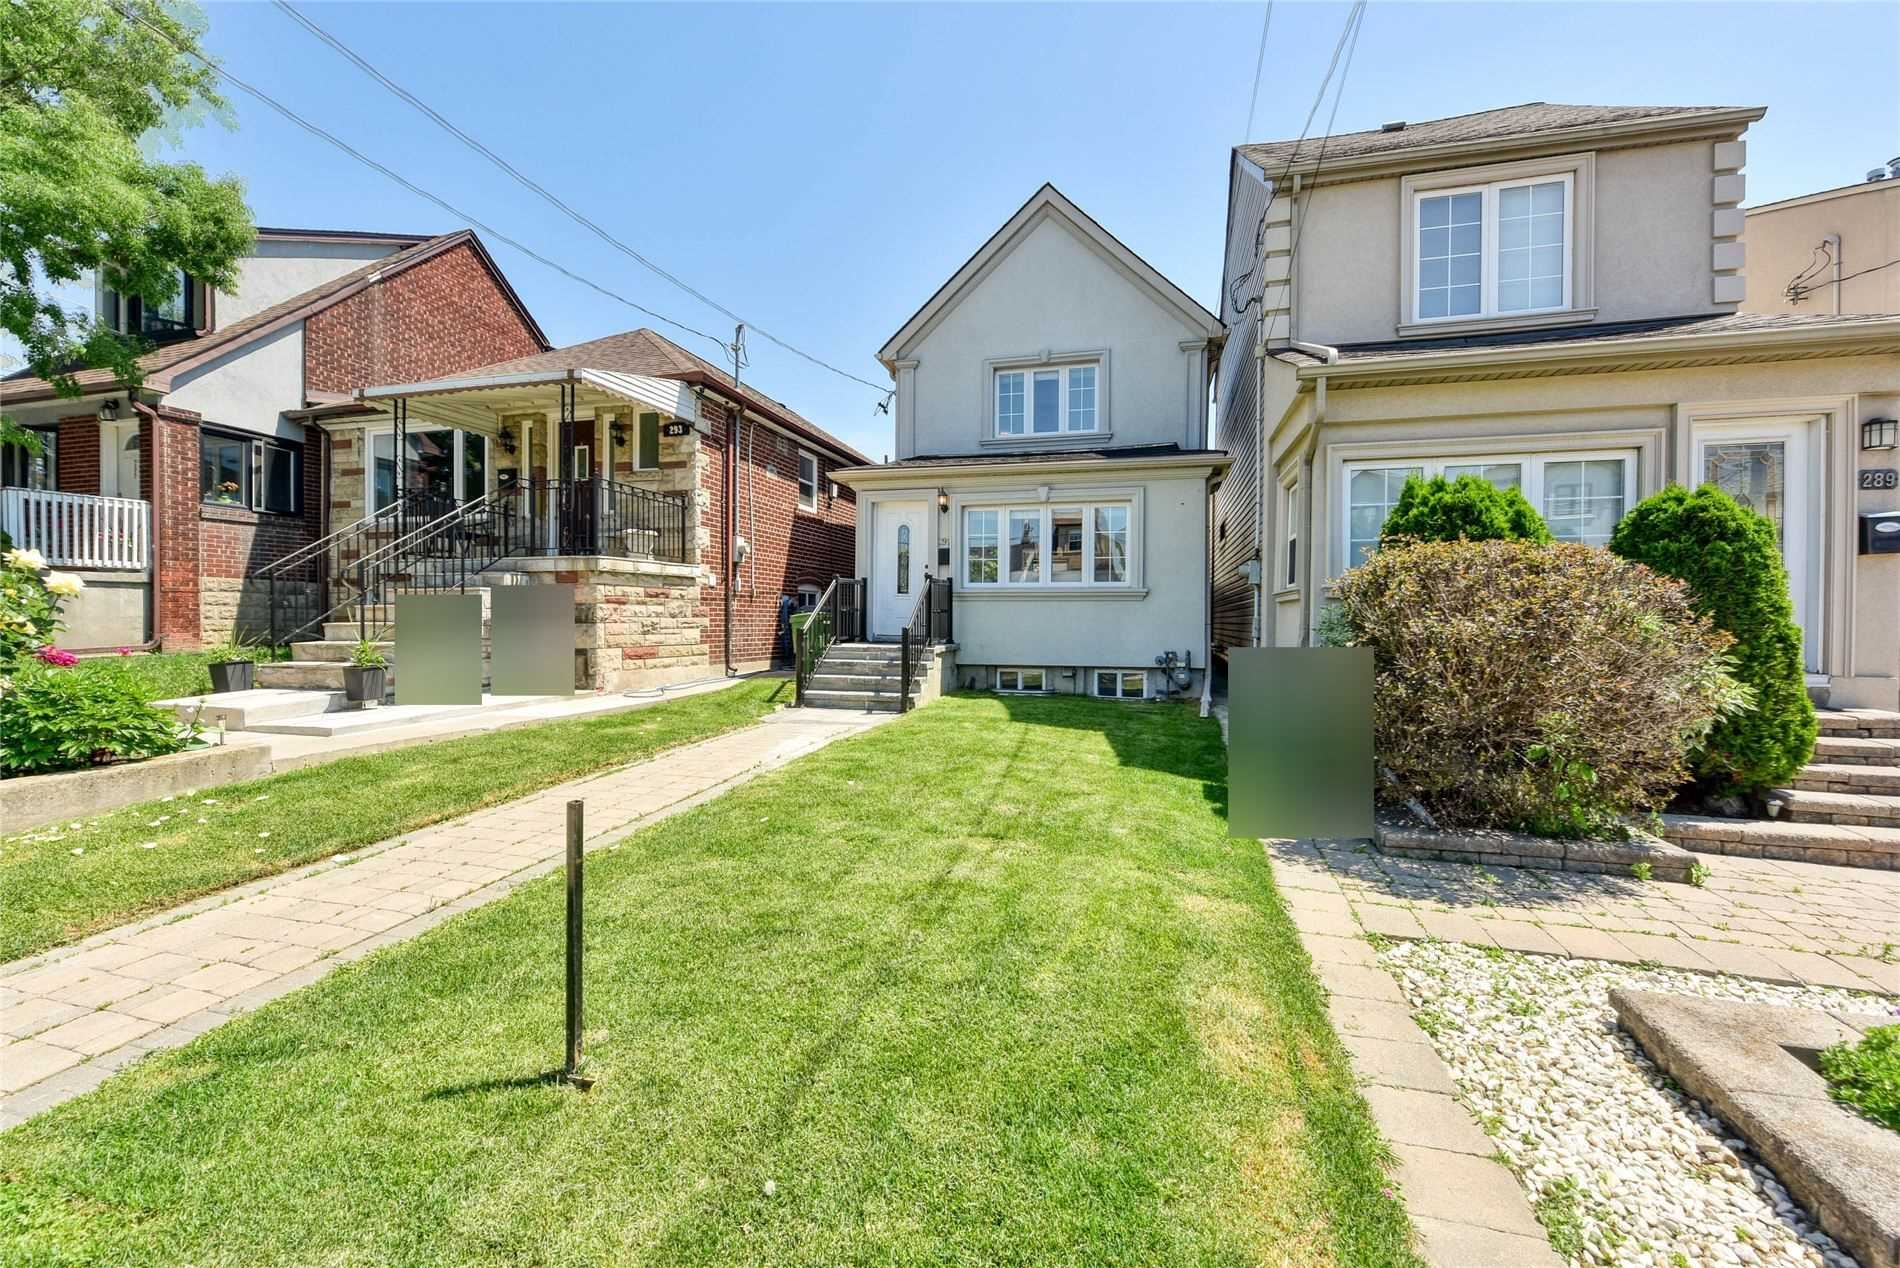 291 Boon Ave, Toronto, ON M6E4A2 - MLS#: W5271655